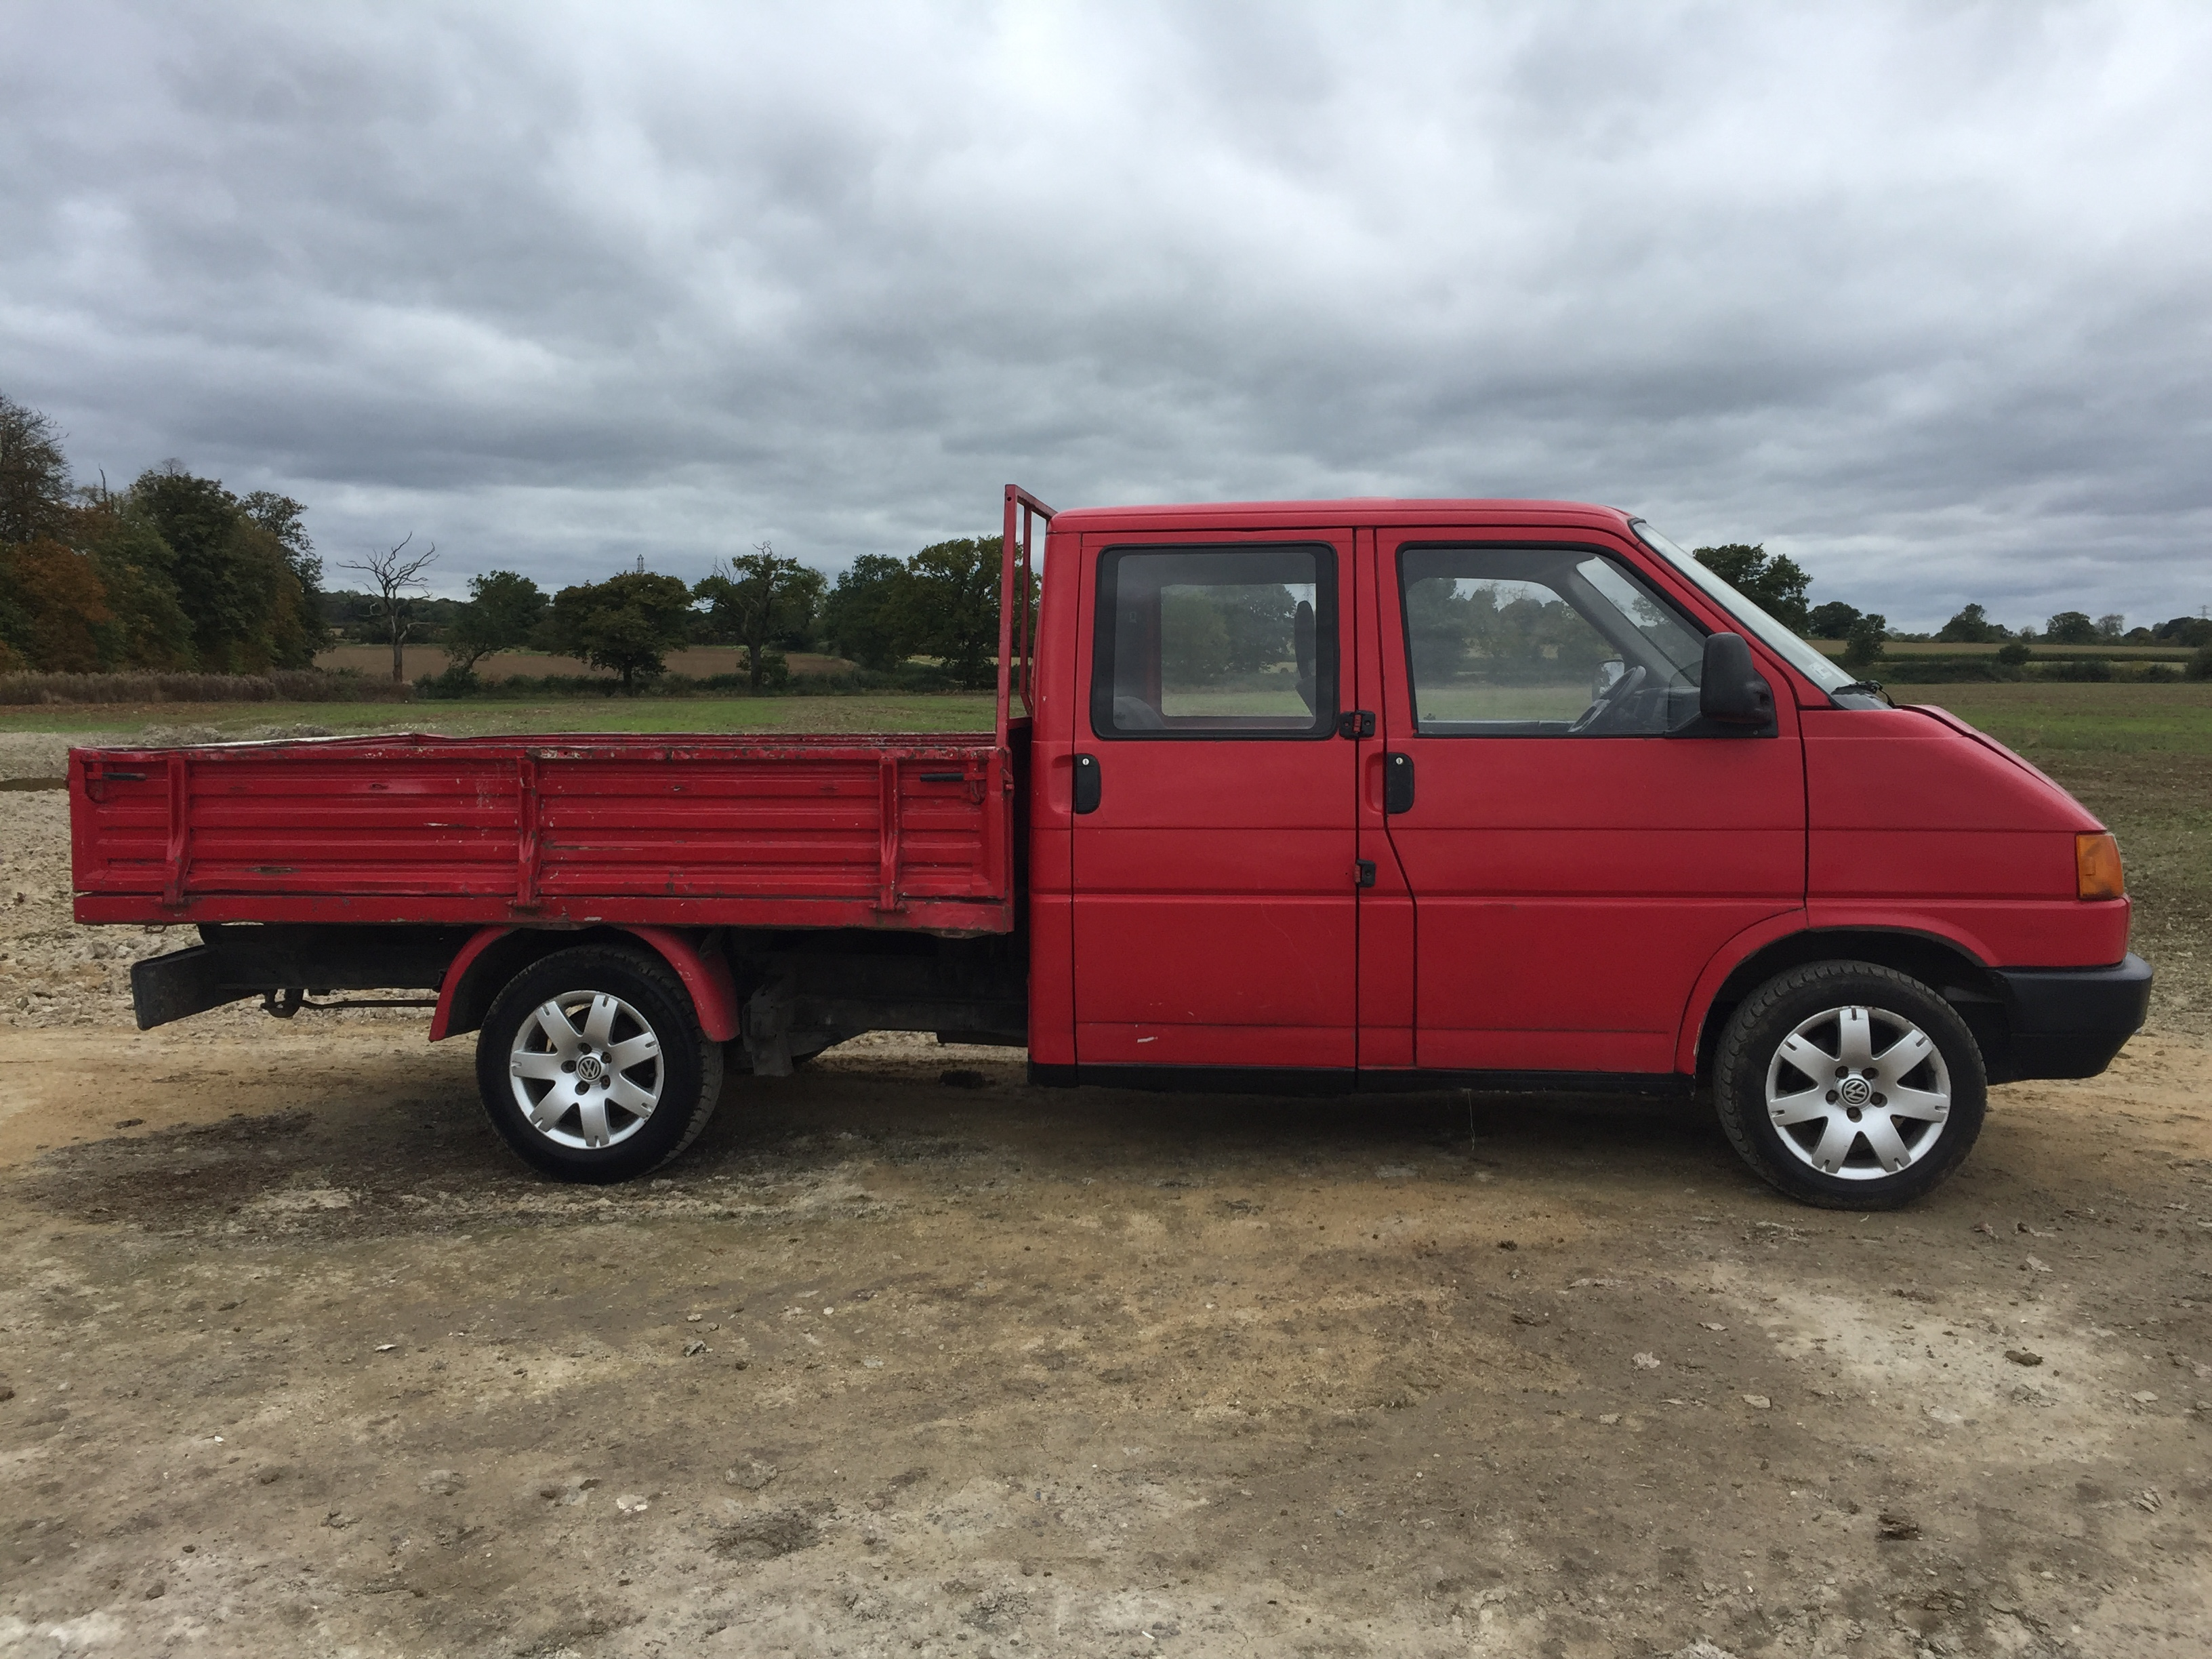 1992 Vw T4 Eurovan Doka Double Cab Pick Up Truck Diesel